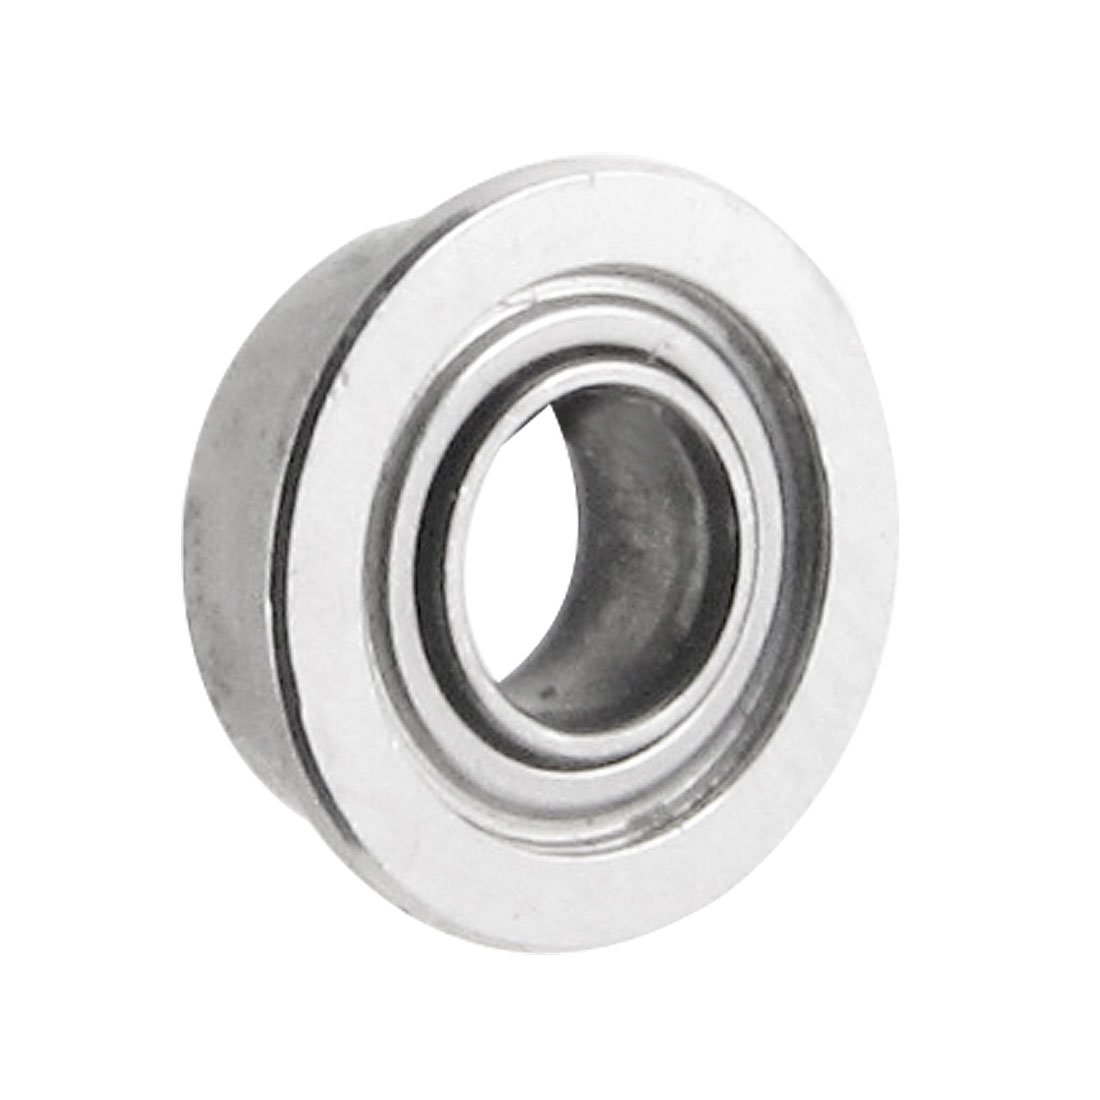 Flanged 3mm x 6mm x 2.5mm Metal Shielded Deep Groove Ball Bearing